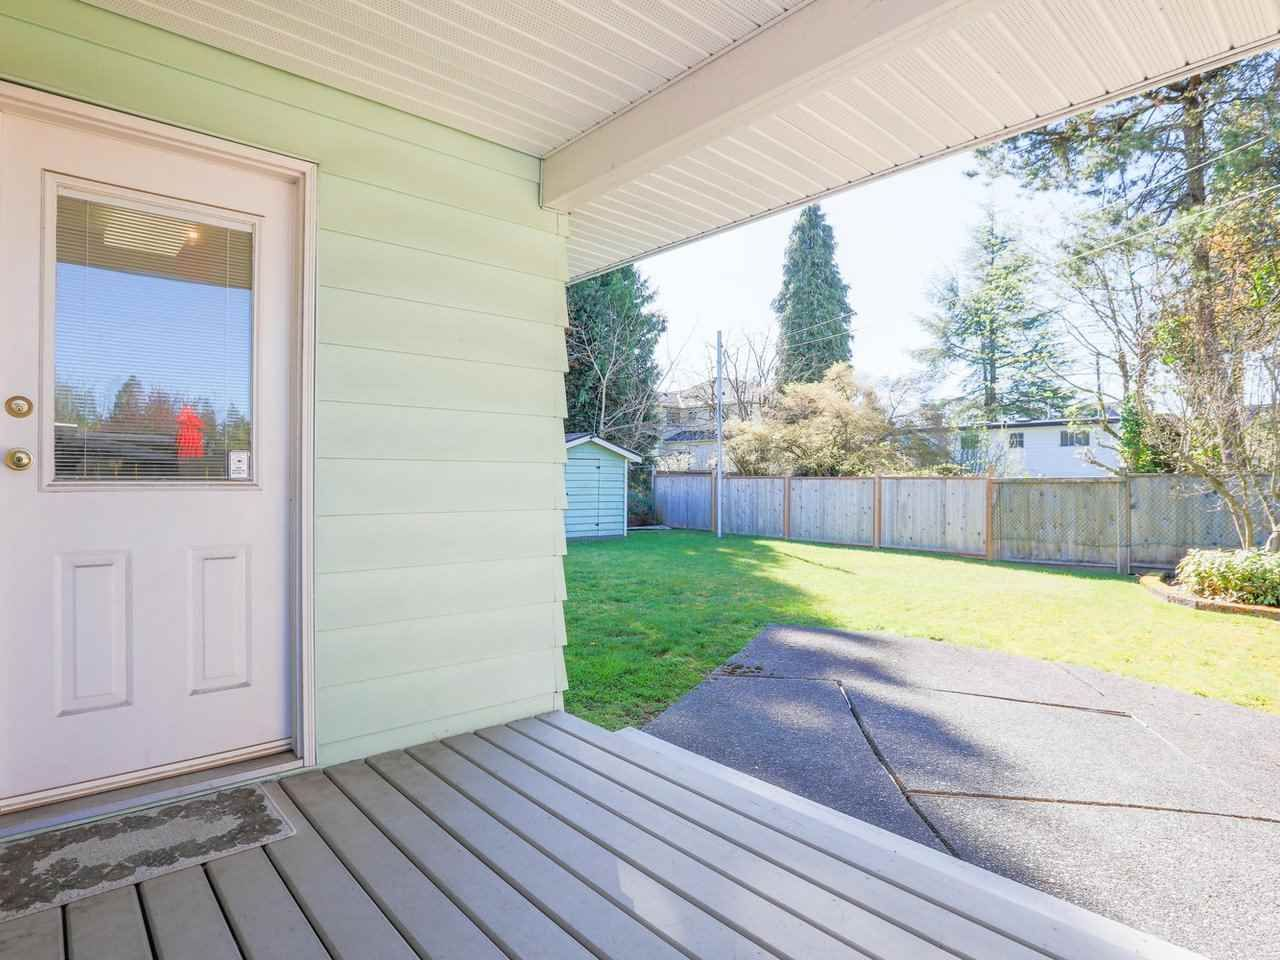 Photo 21: Photos: 1422 GROVER Avenue in Coquitlam: Central Coquitlam House for sale : MLS®# R2568207